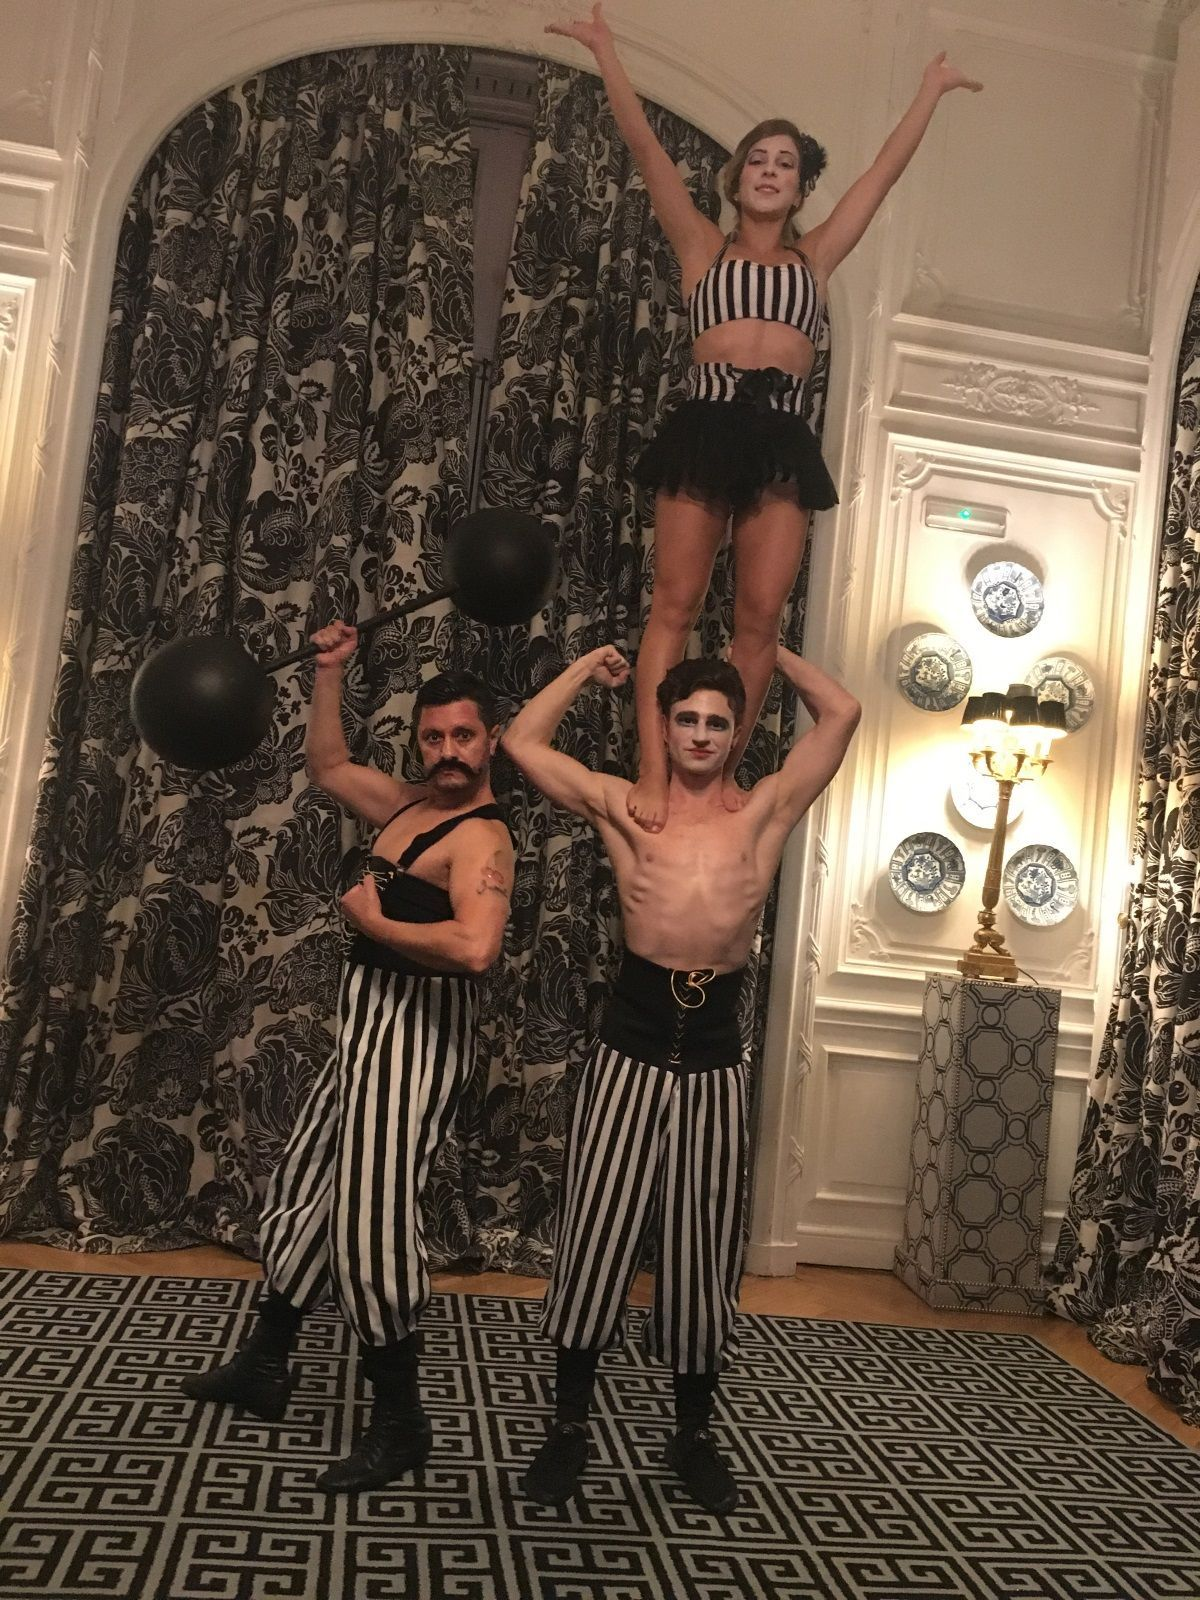 Circus performances - Acrobats